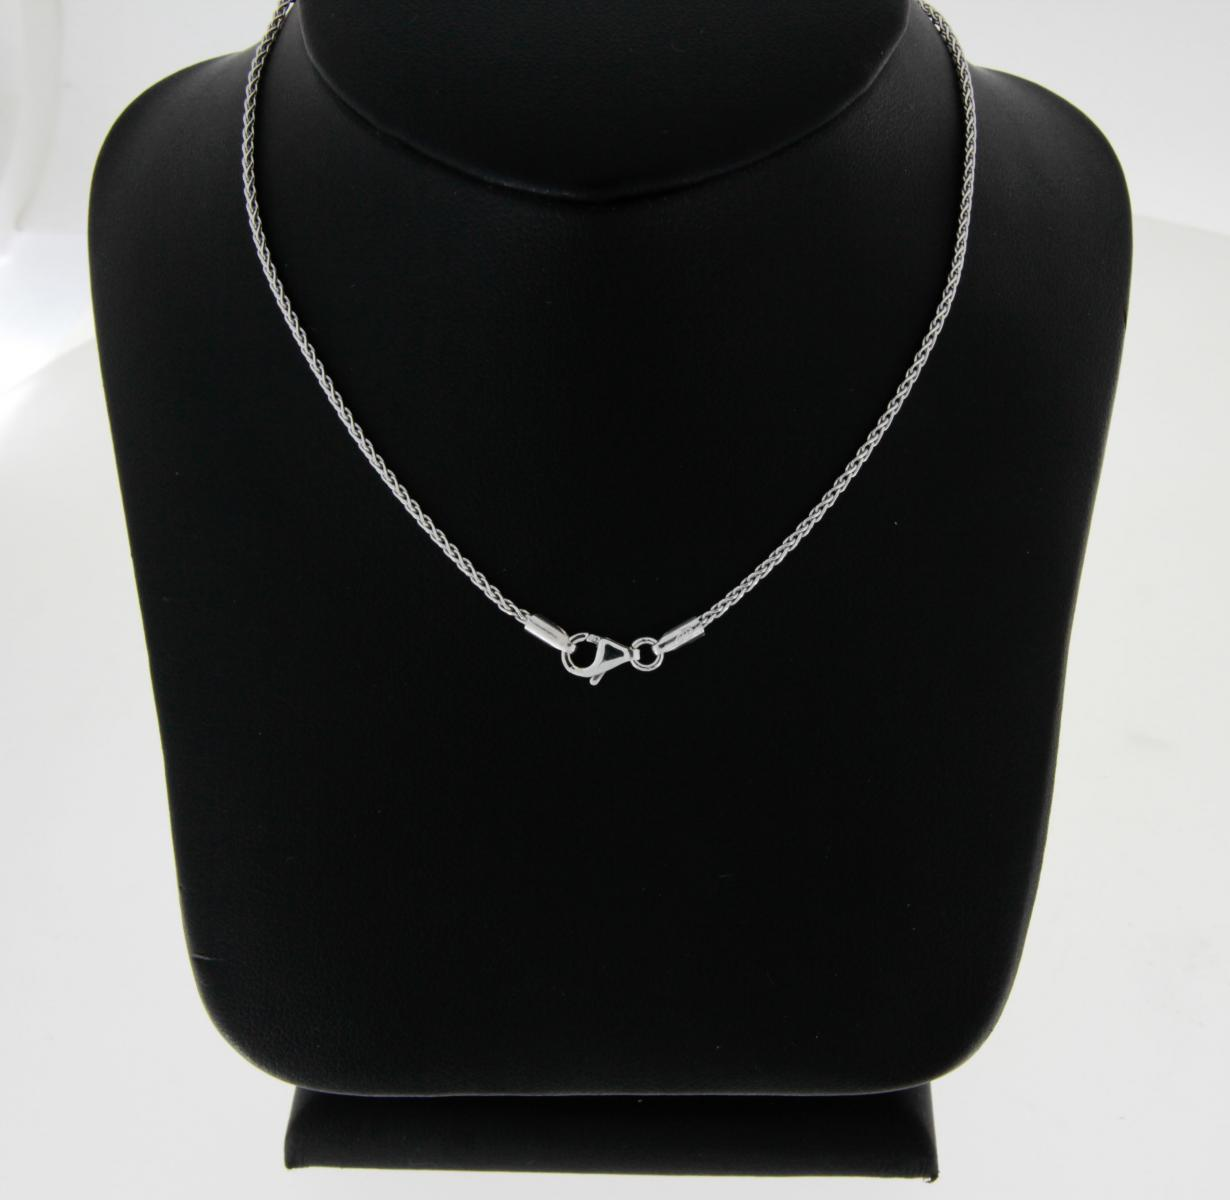 brilliant products necklace evermarker crystals of